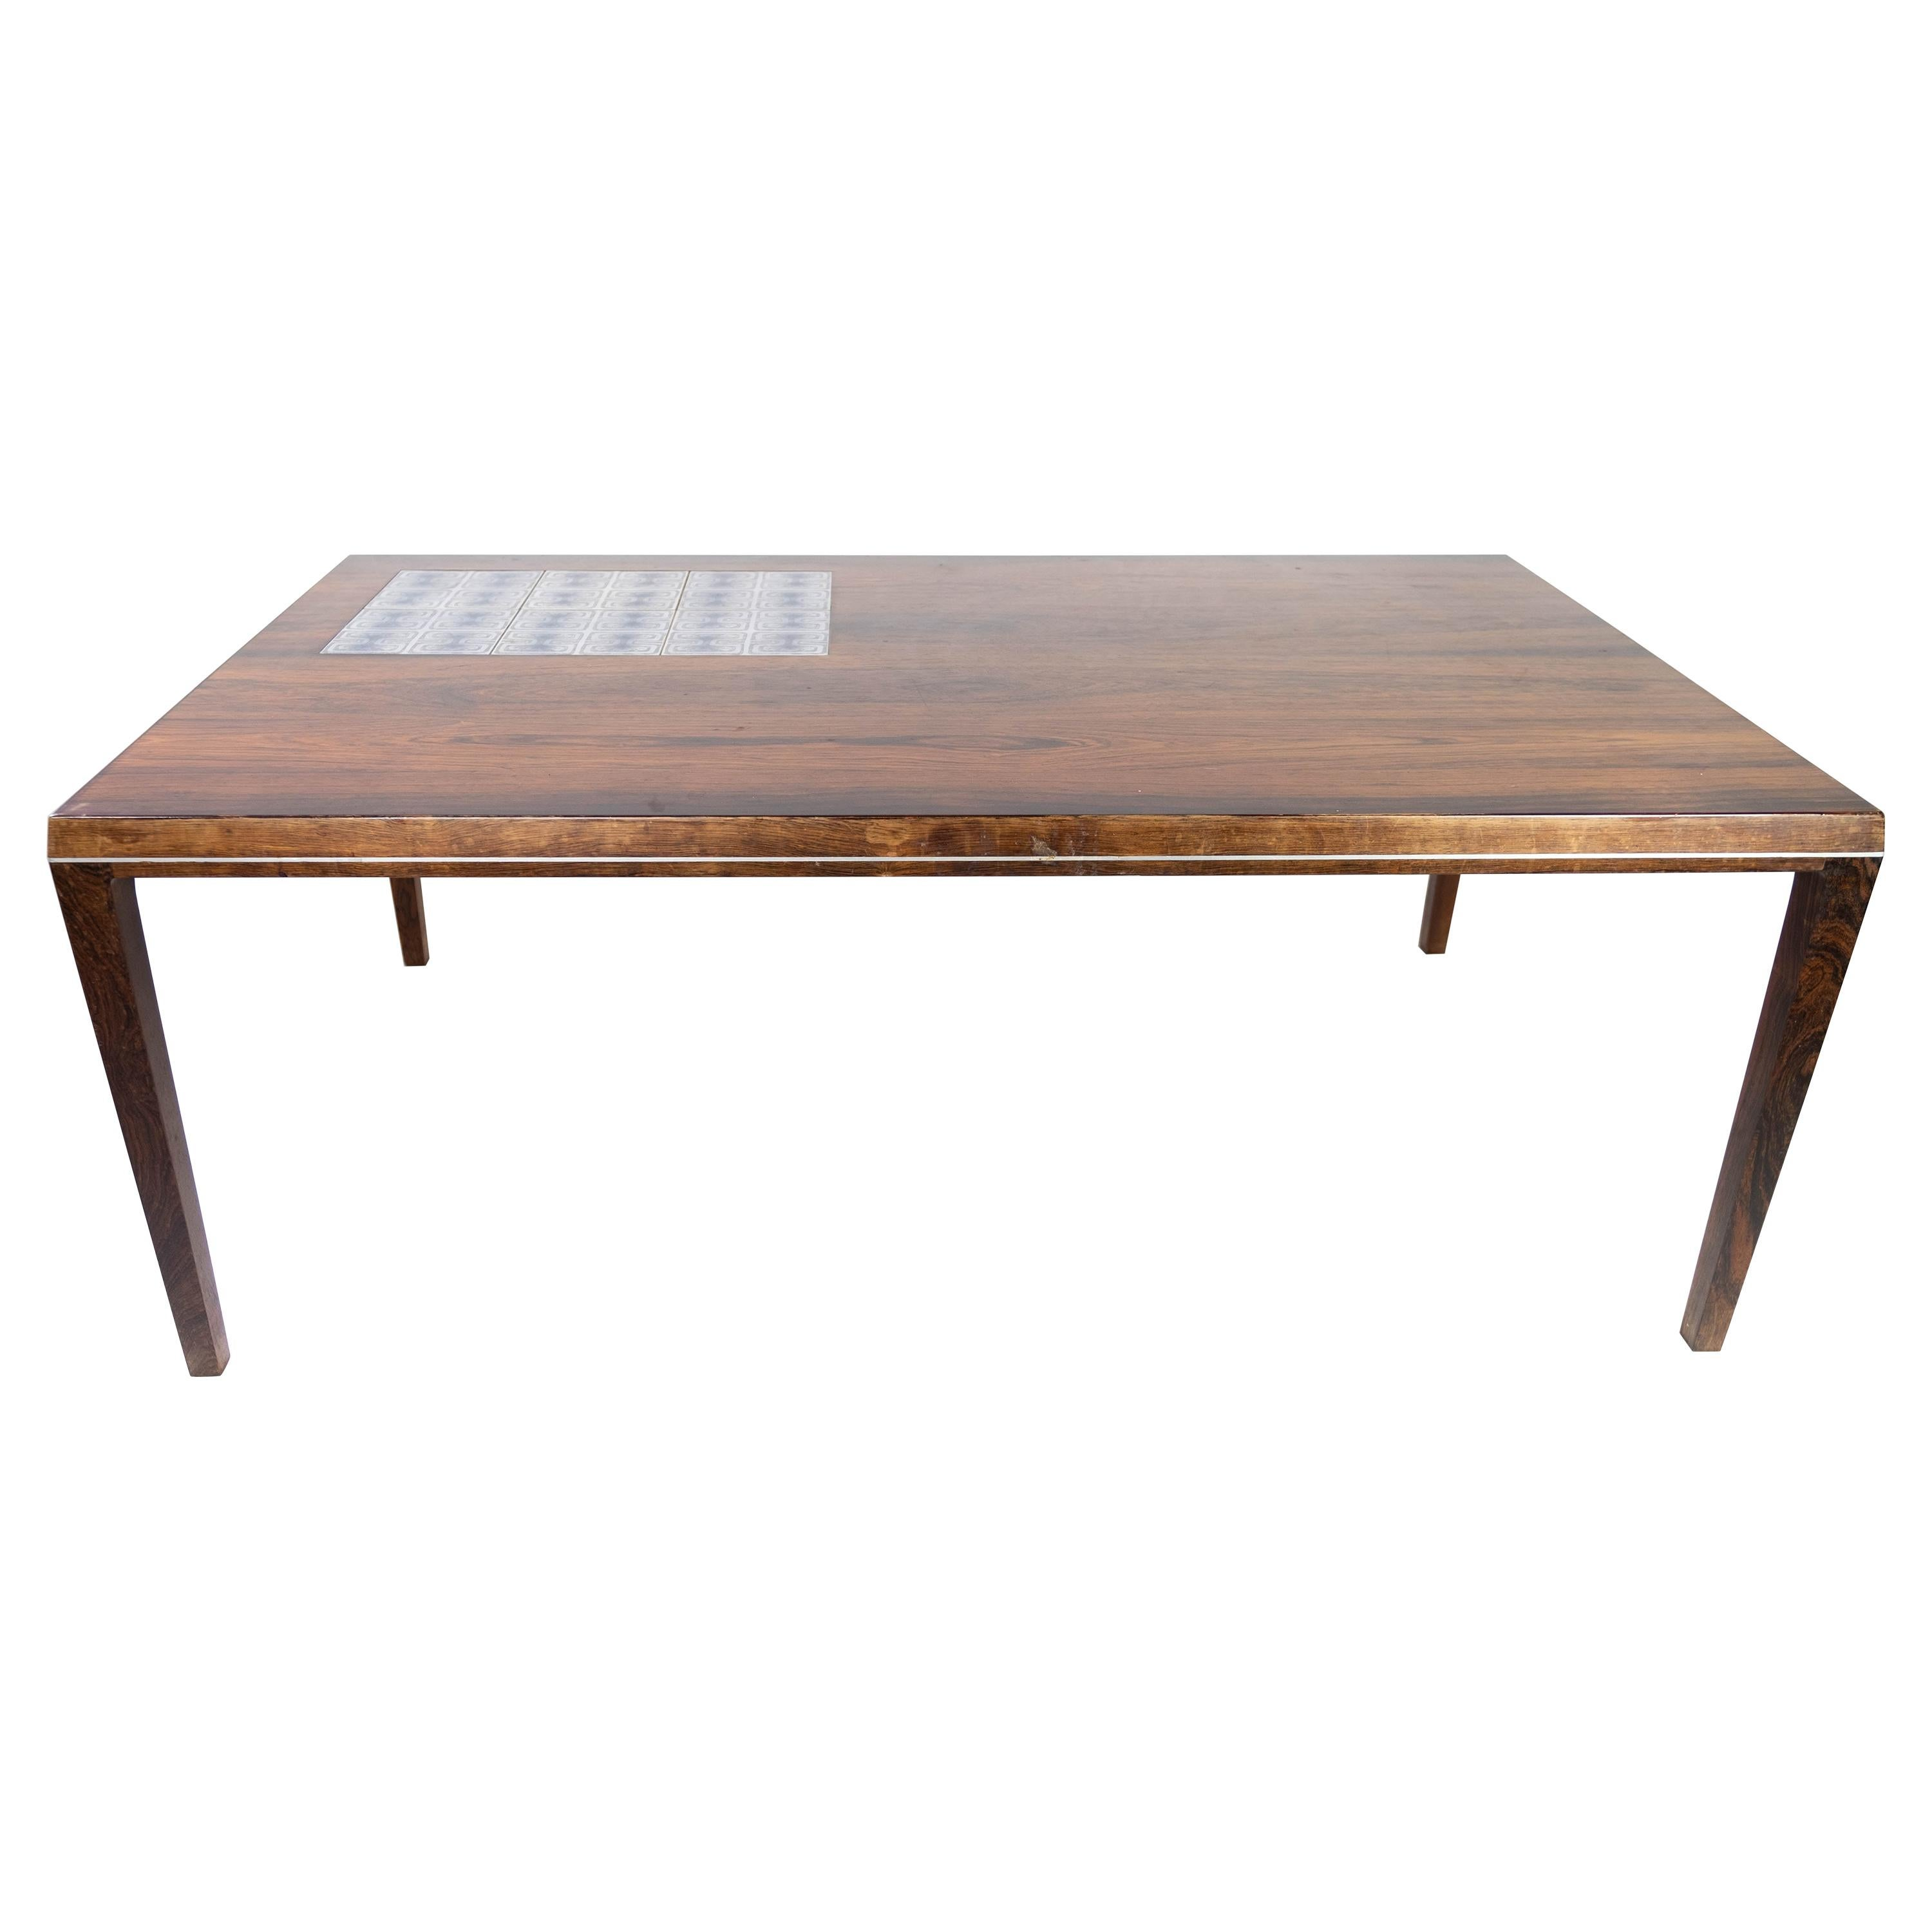 Coffee Table in Rosewood with Tiles, Designed by Johannes Andersen, 1960s